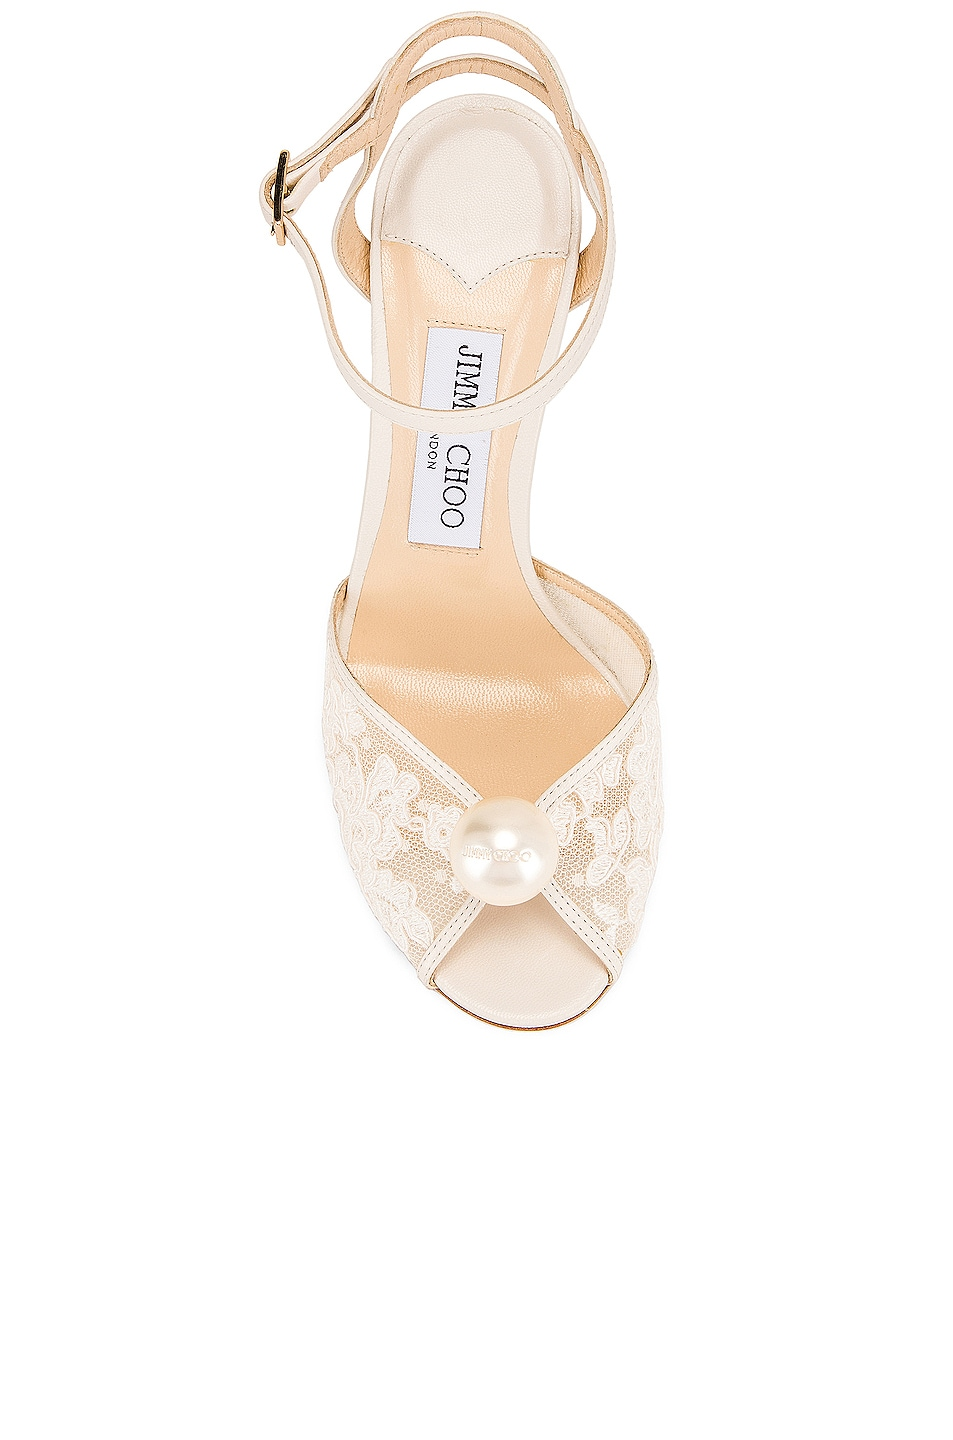 Image 4 of Jimmy Choo Sacora 100 Floral Lace with Pearl Sandal in White